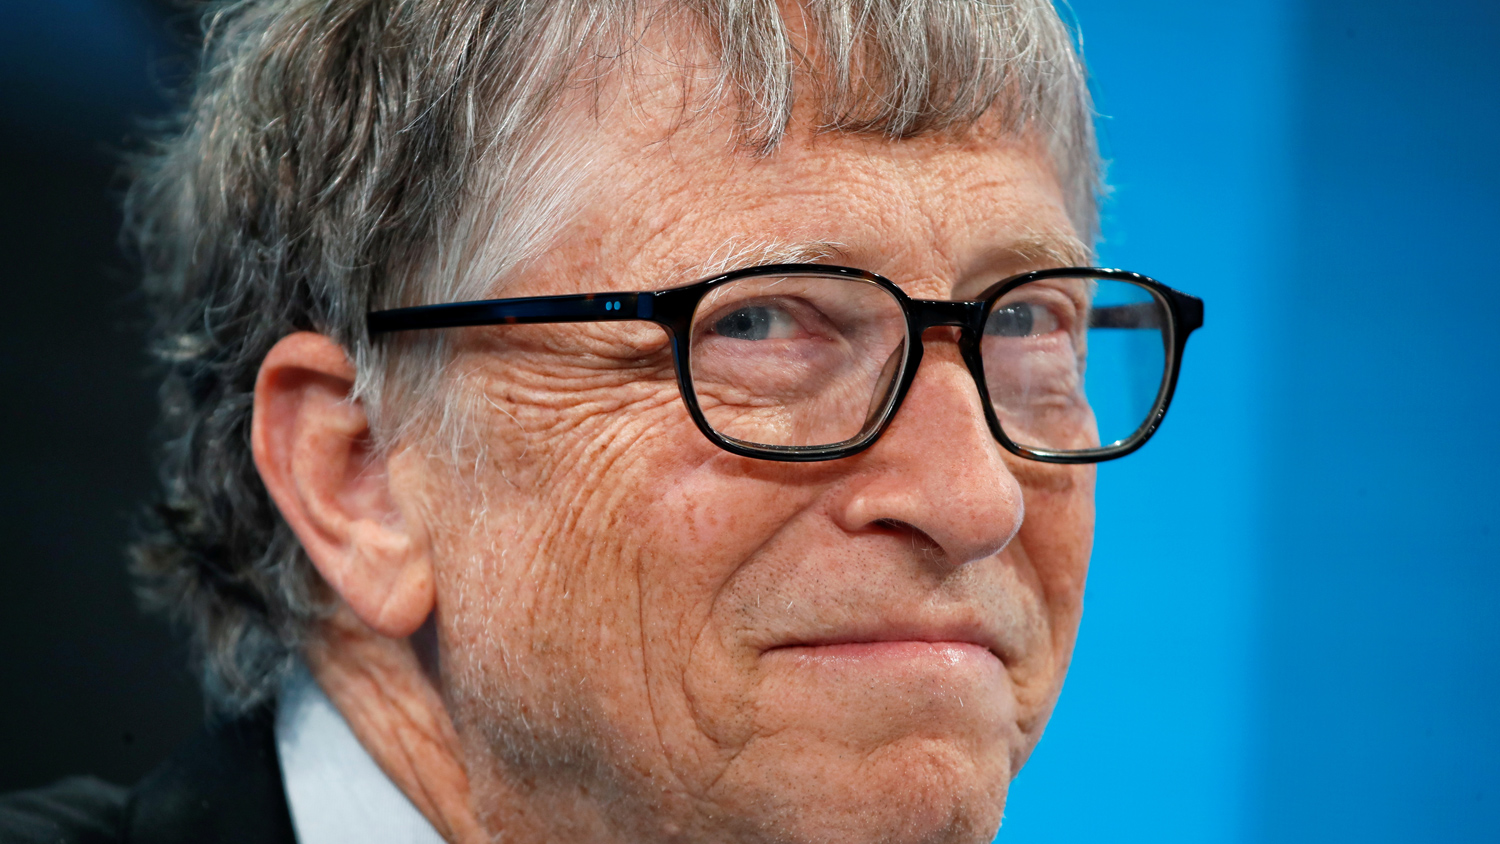 FILE PHOTO: Bill Gates, Co-Chair of Bill & Melinda Gates Foundation, attends the World Economic Forum (WEF) annual meeting in Davos, Switzerland, January 22, 2019. REUTERS/Arnd Wiegmann/File Photo